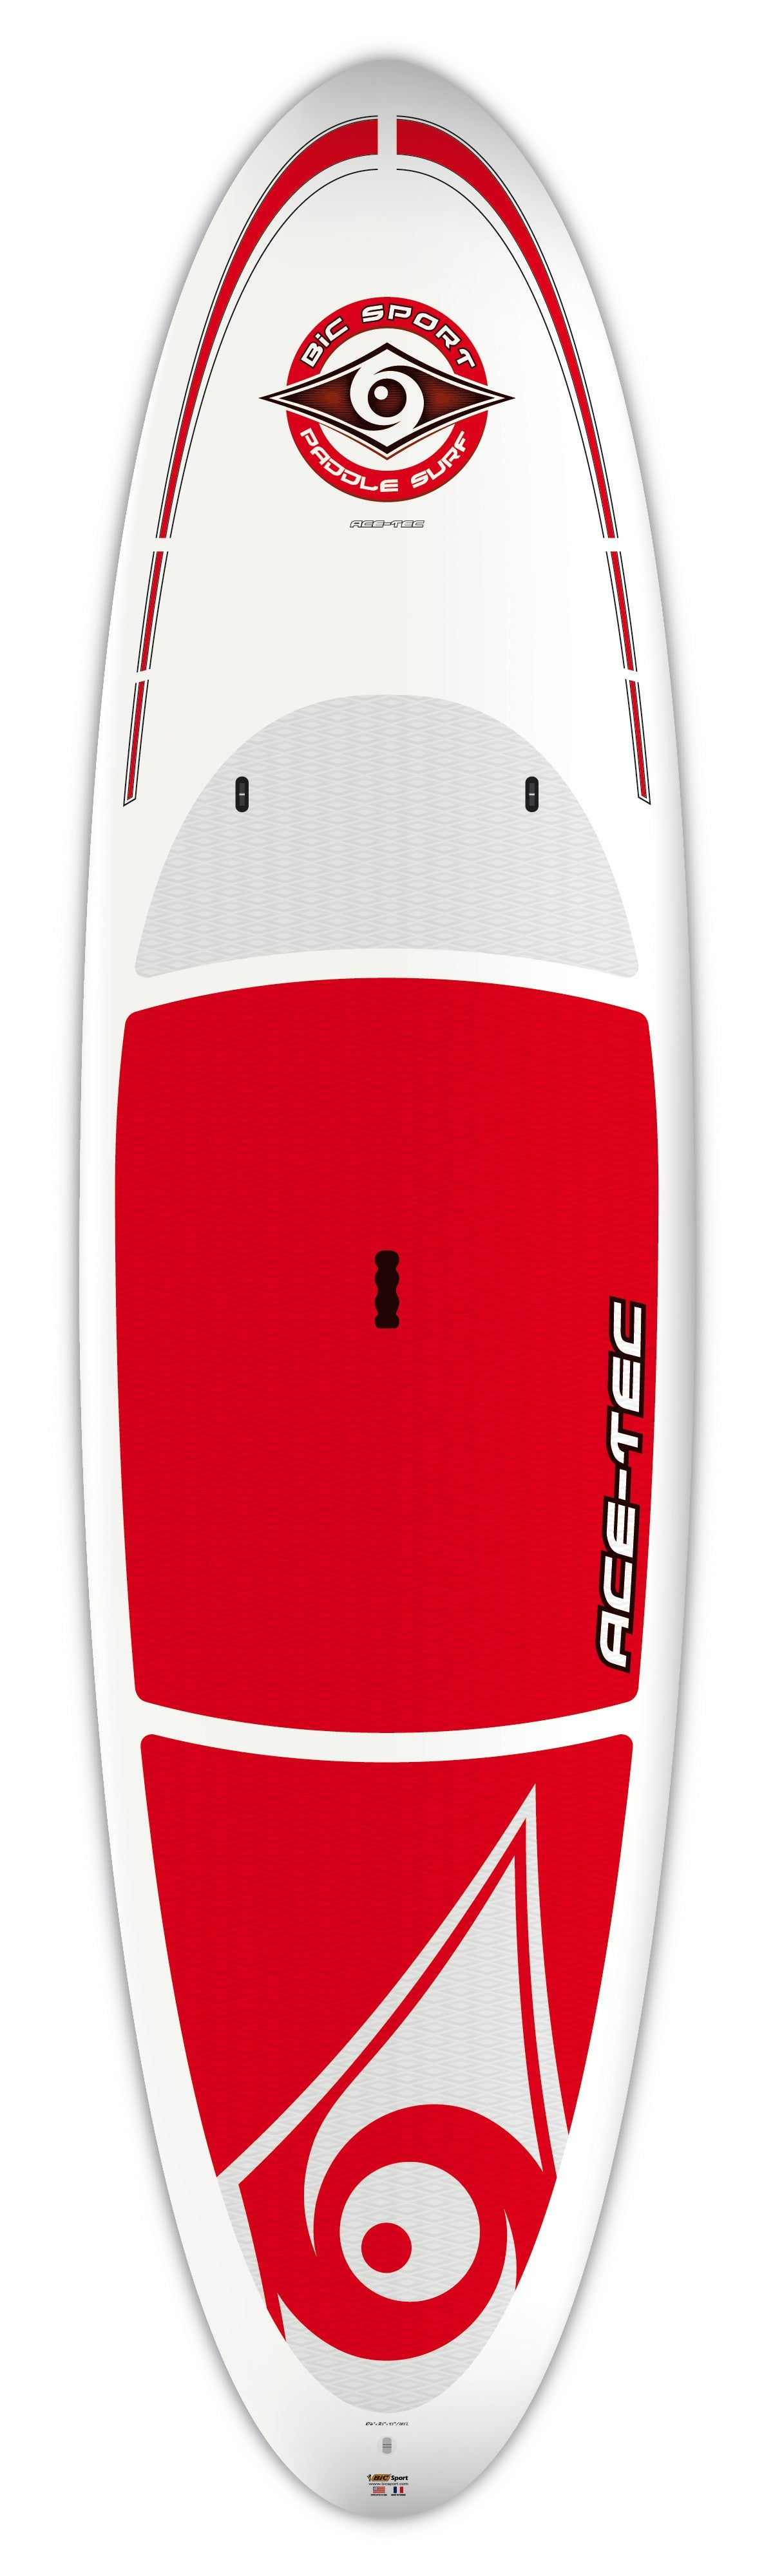 "BIC 11'6"" Performer Ace Tec Red Stand Up Paddleboard"